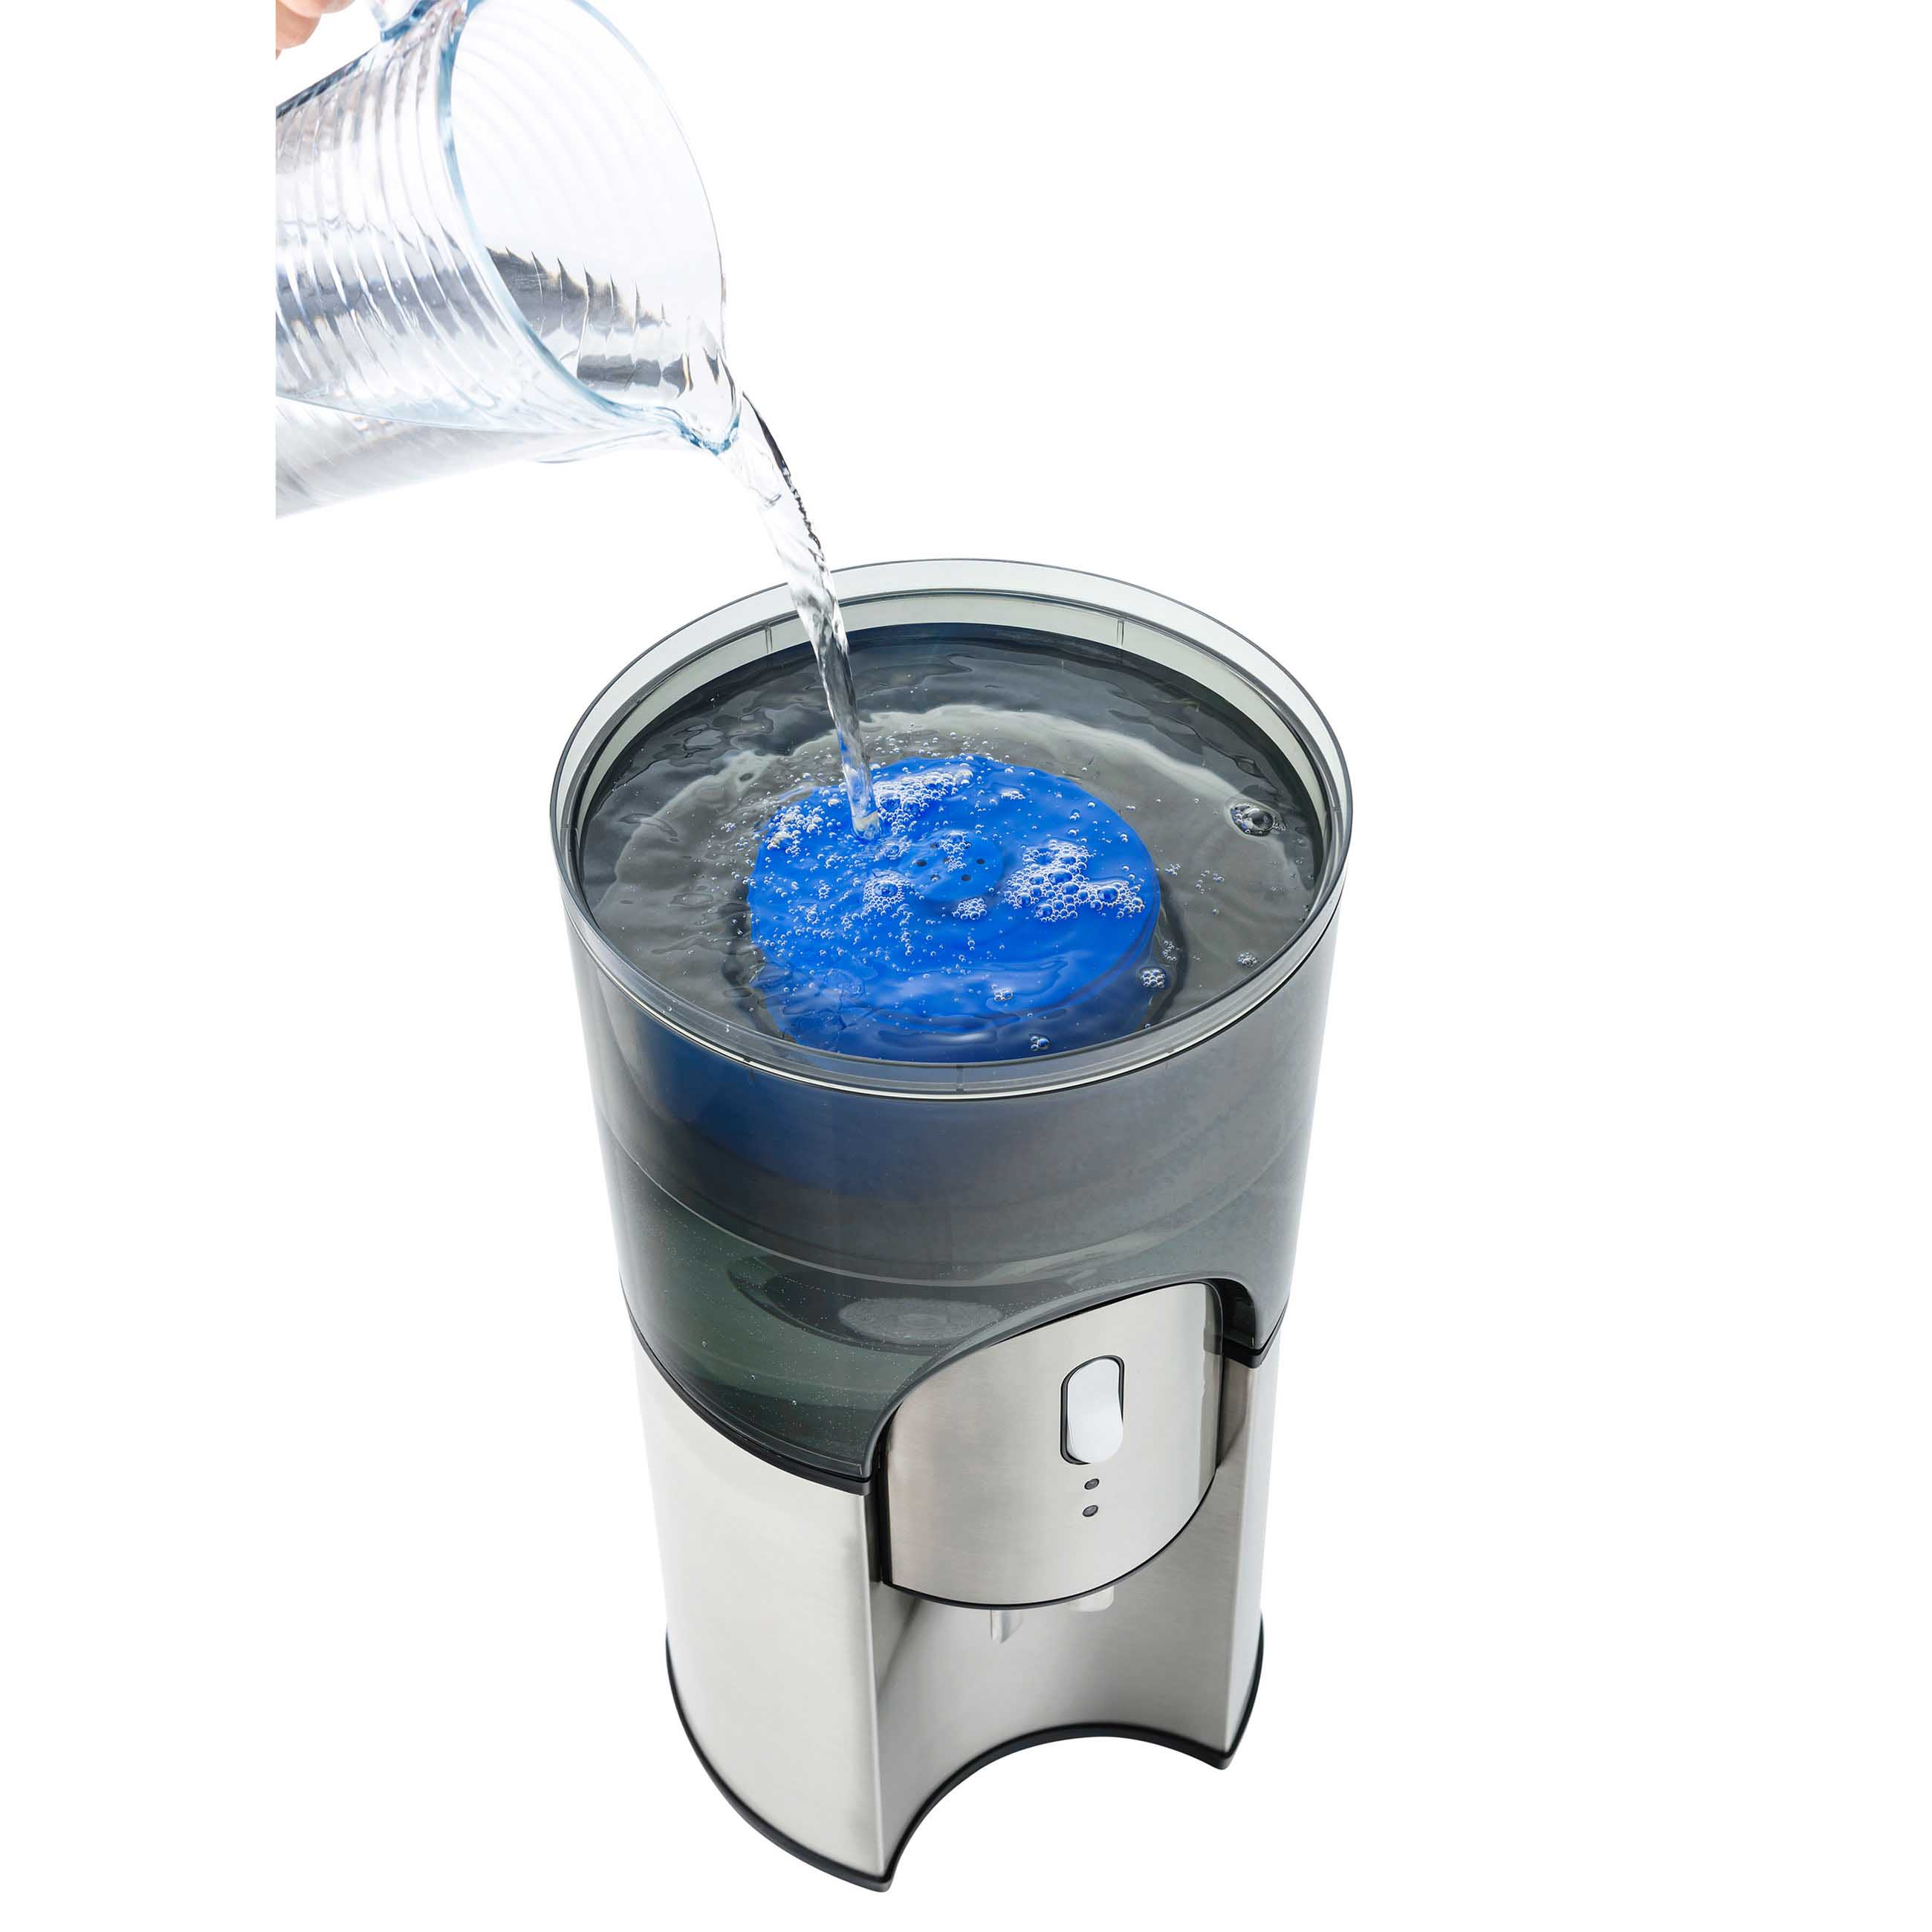 Desktop Water Cooler Stainless Steel Water Filtration in Stainless Steel simply filter tap water